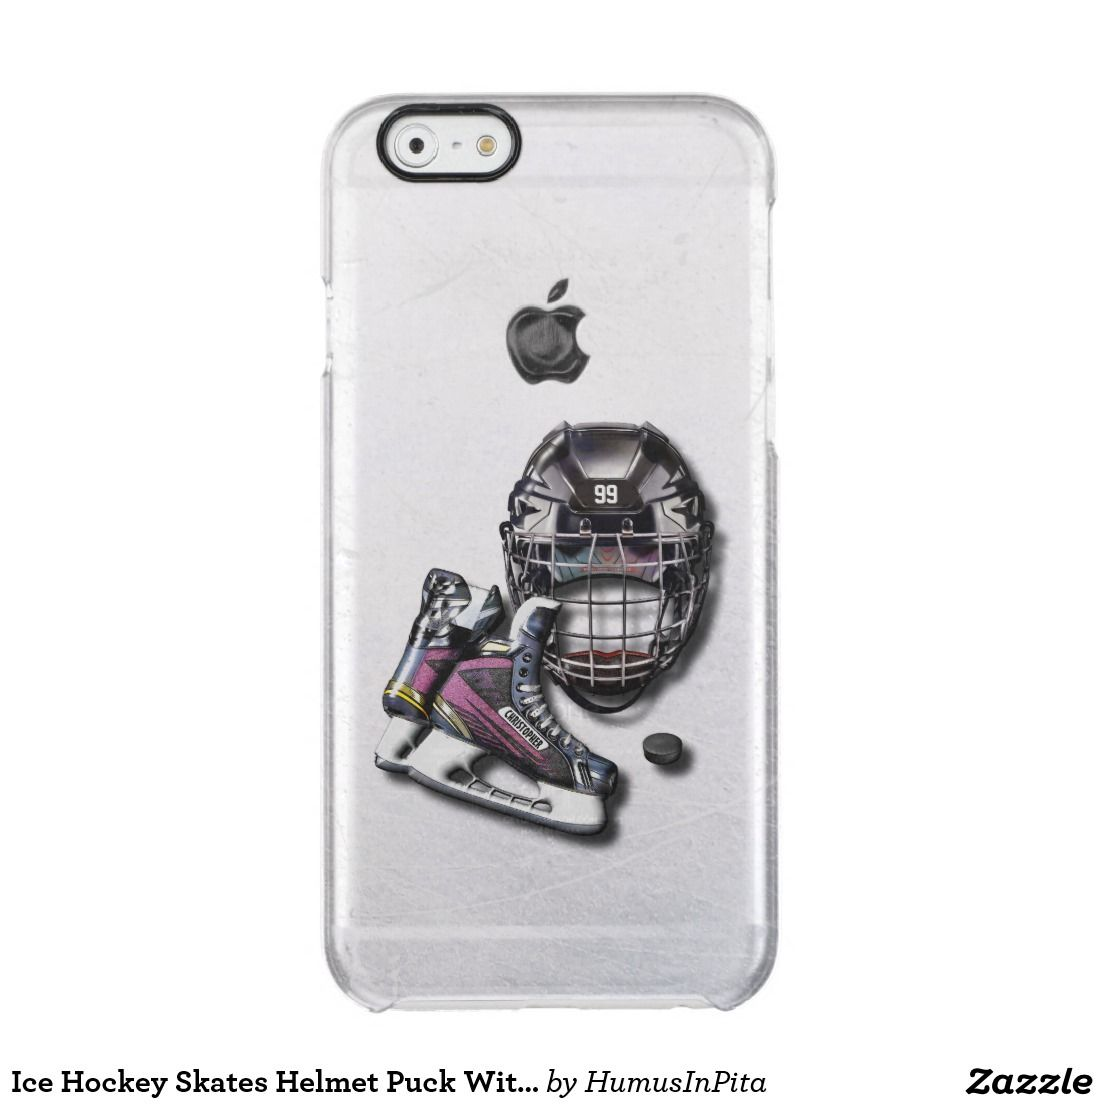 Ice Hockey Skates Helmet Puck With Name And Number Clear Iphone 6 6s Broken Glass Circuit Board Cover For 5c Zazzle Case